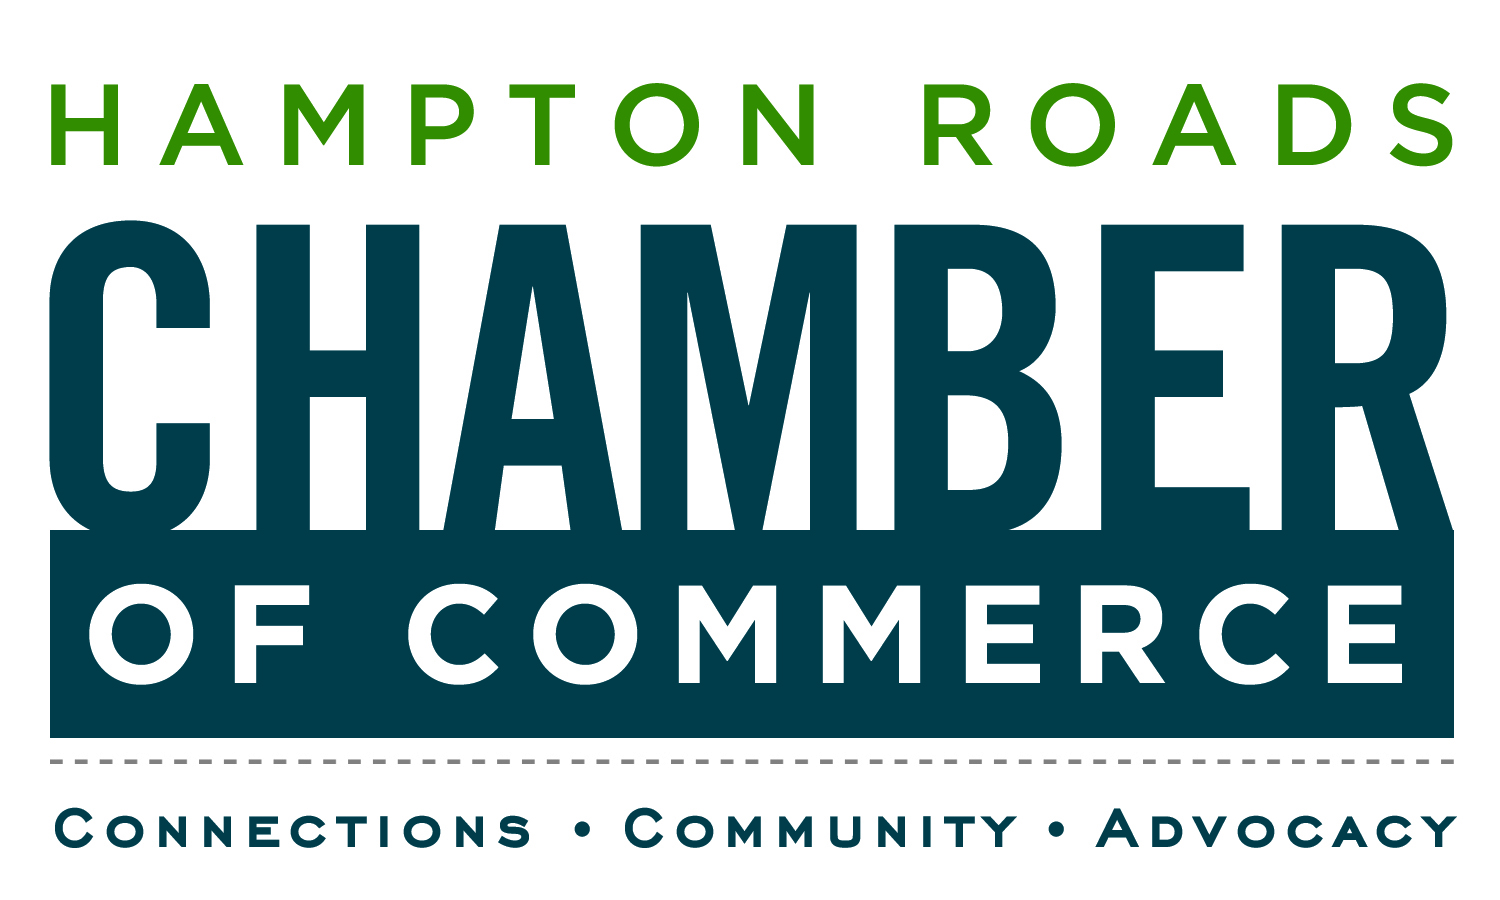 Hampton Roads Chamber of Commerce Offers Second Trip to Cuba and Trip to Greece